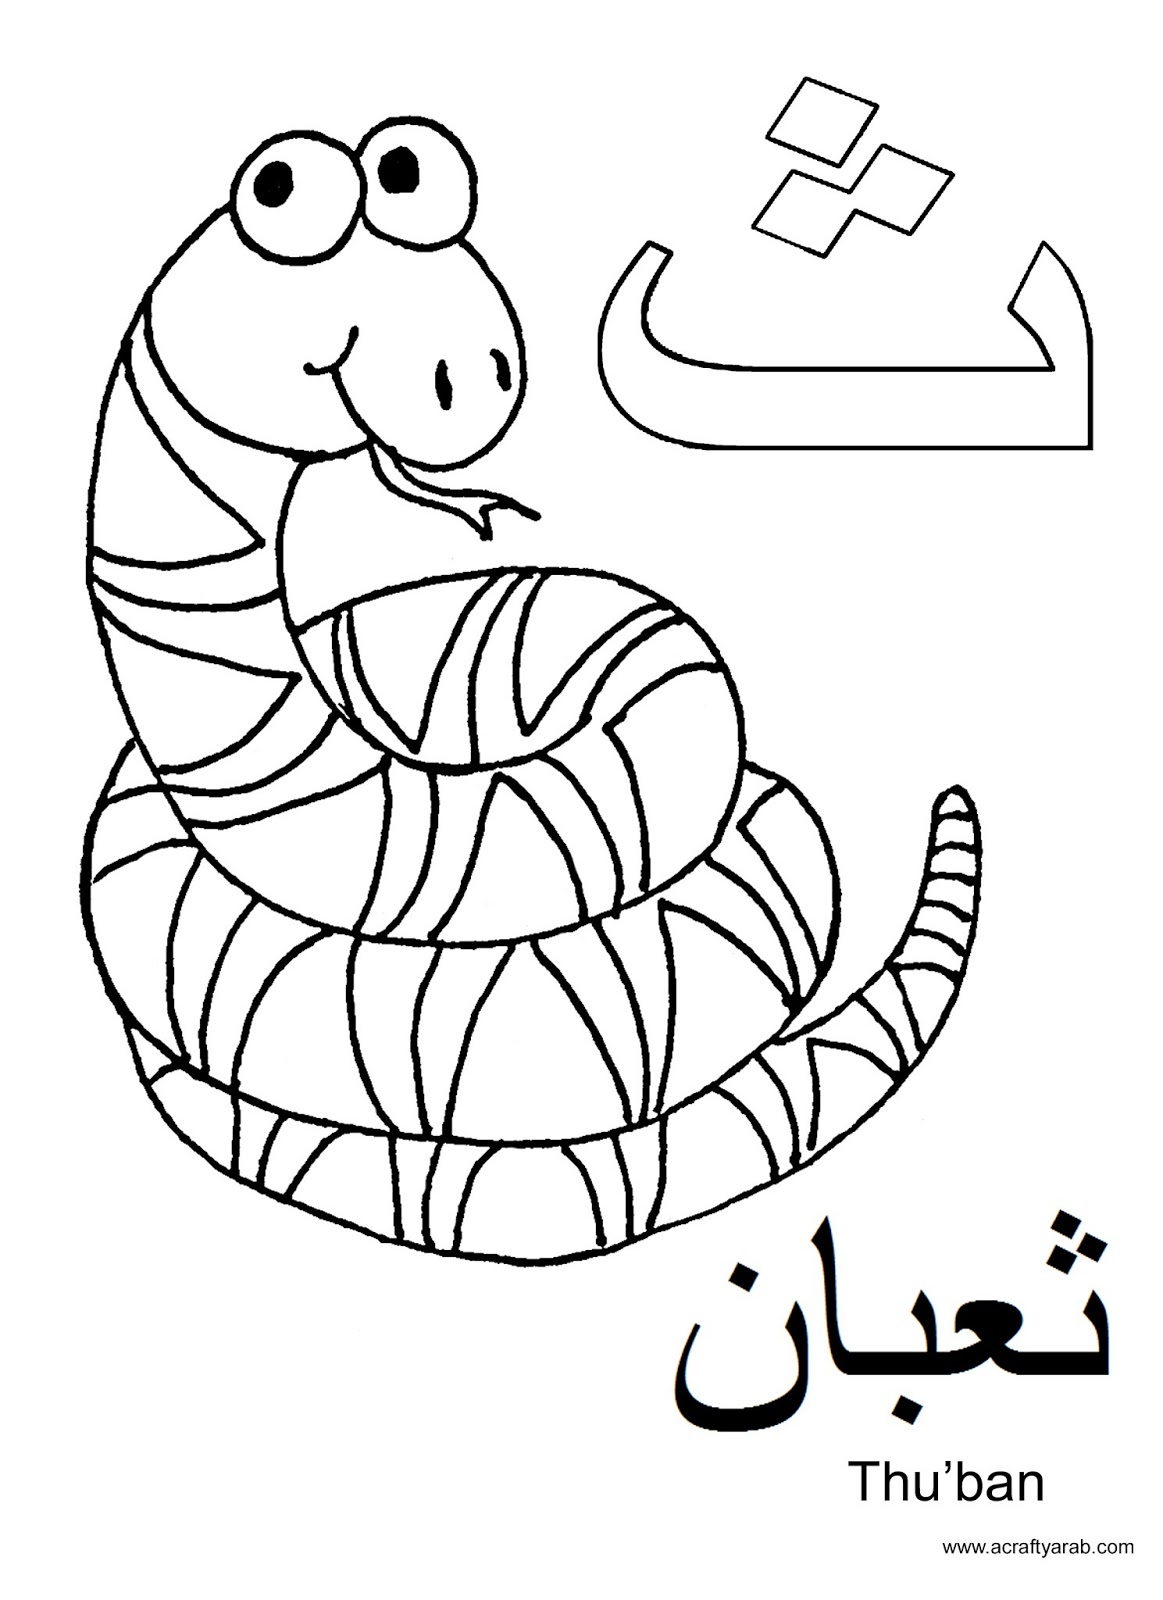 Arabic Alphabet Coloring Pages Tha Is For Thu Ban